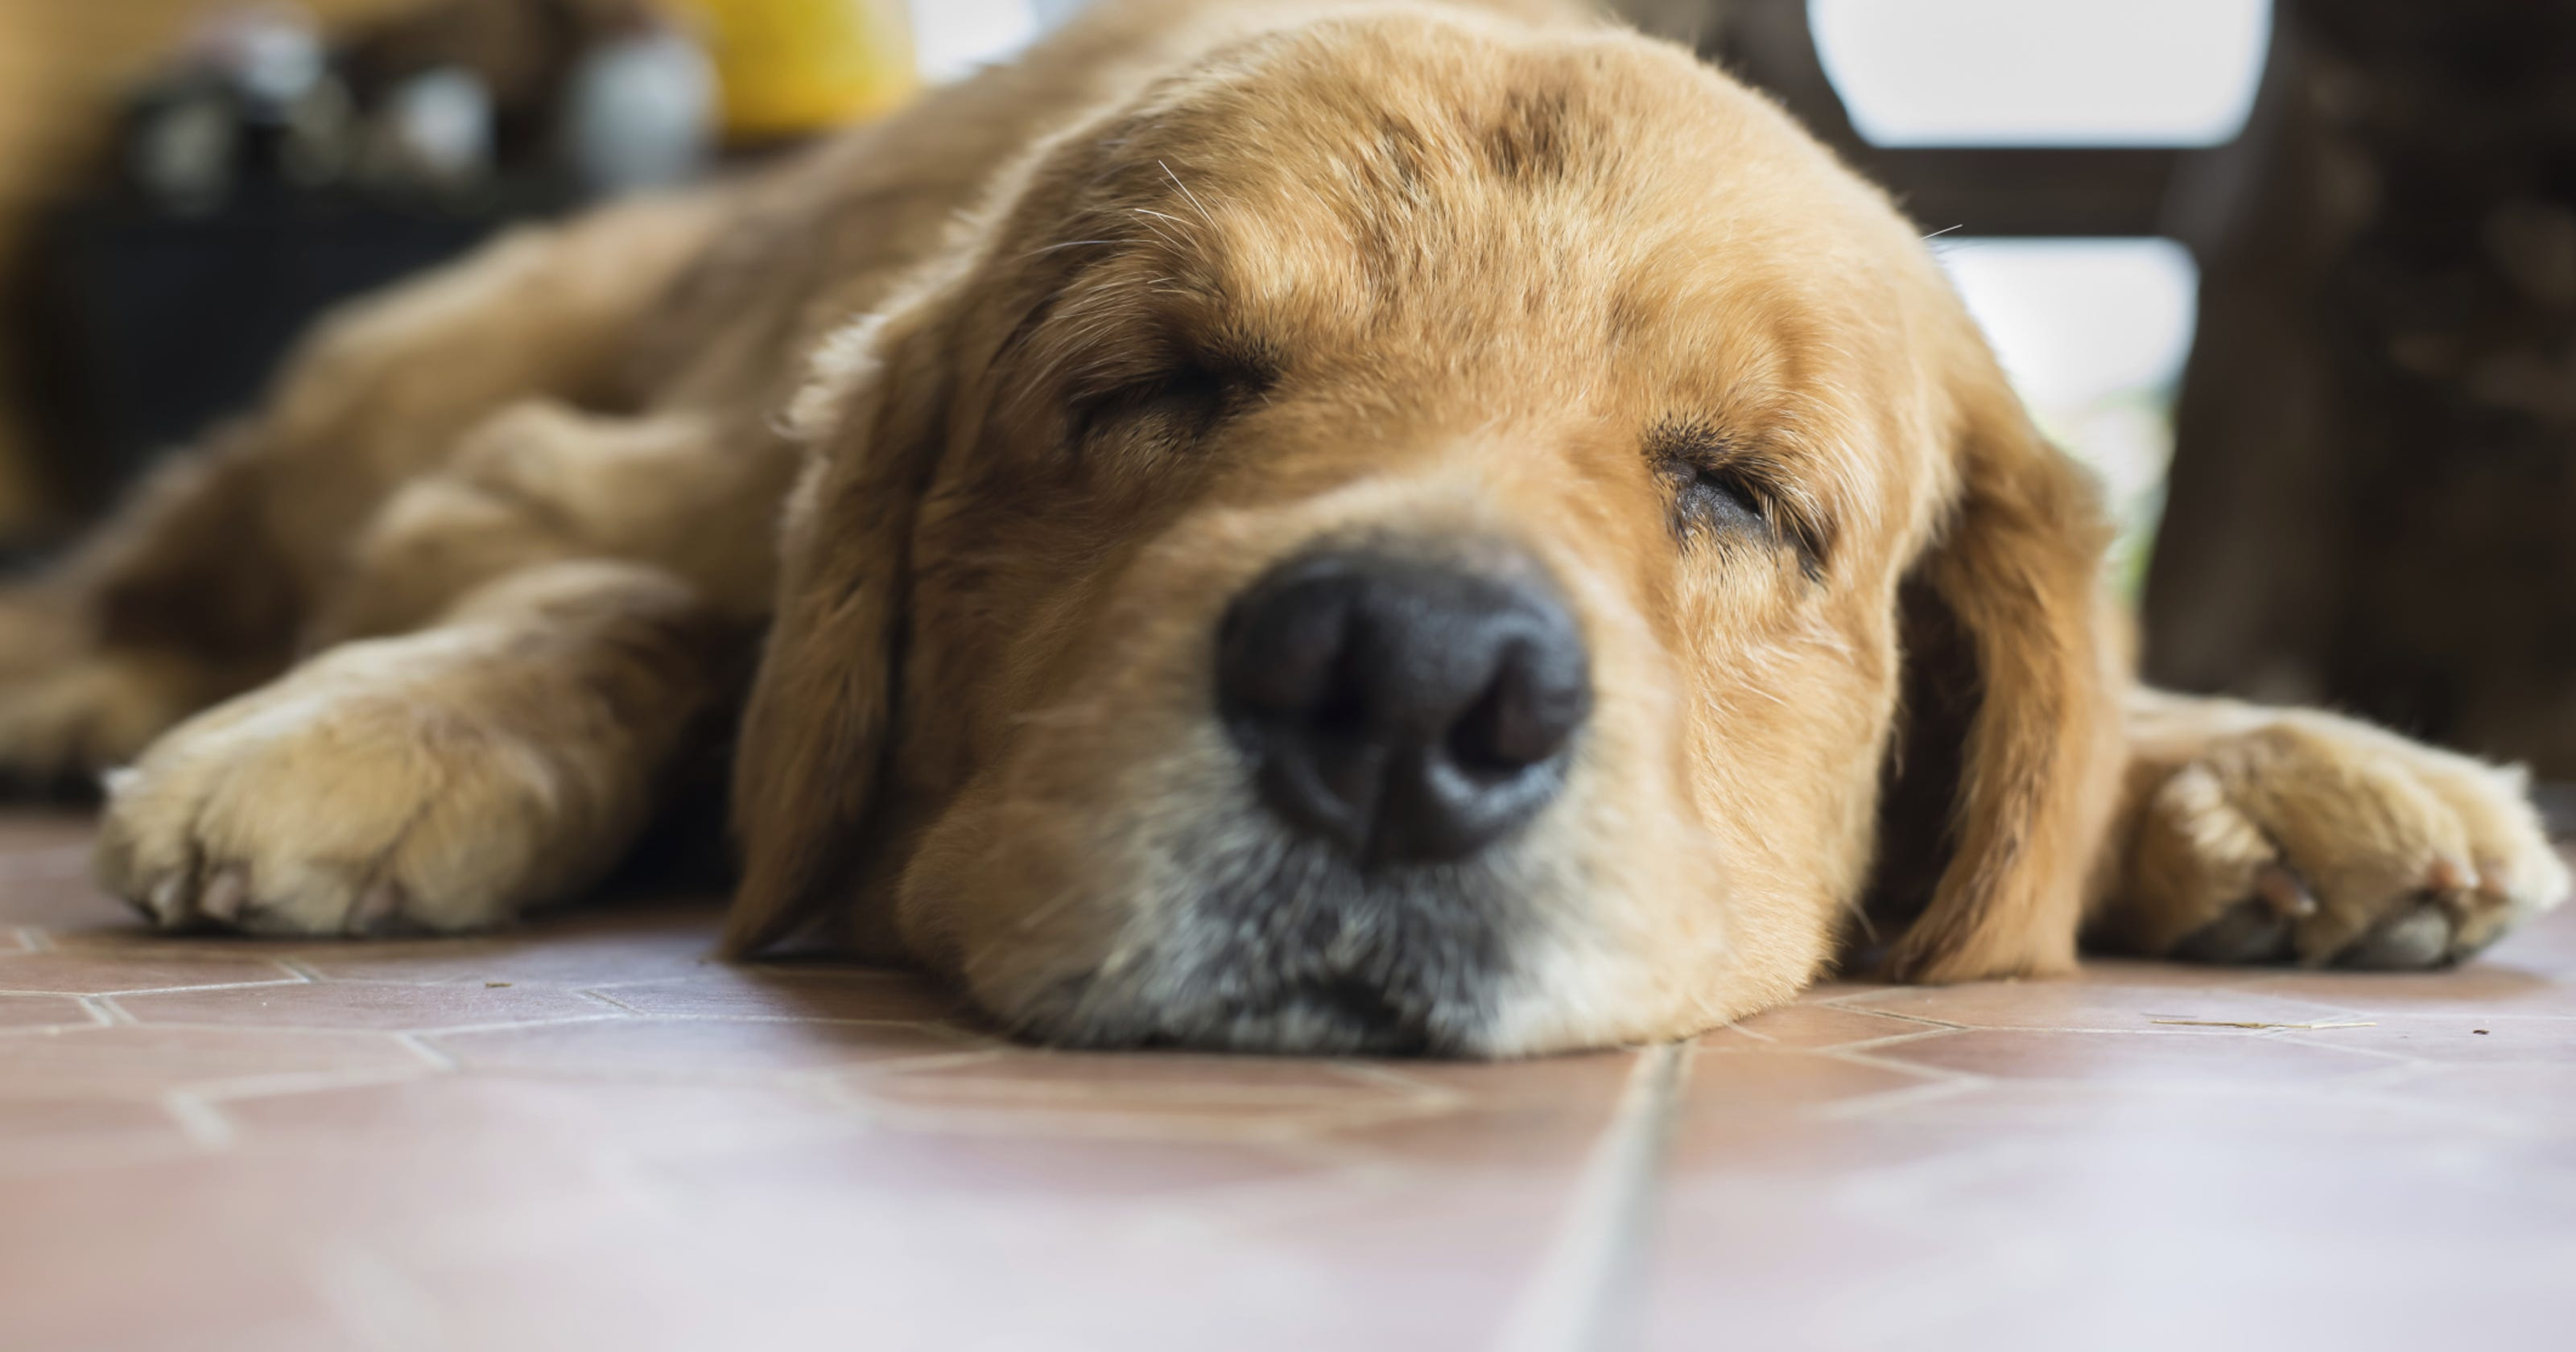 Bloat' refers to 2 different stomach ailments in pets